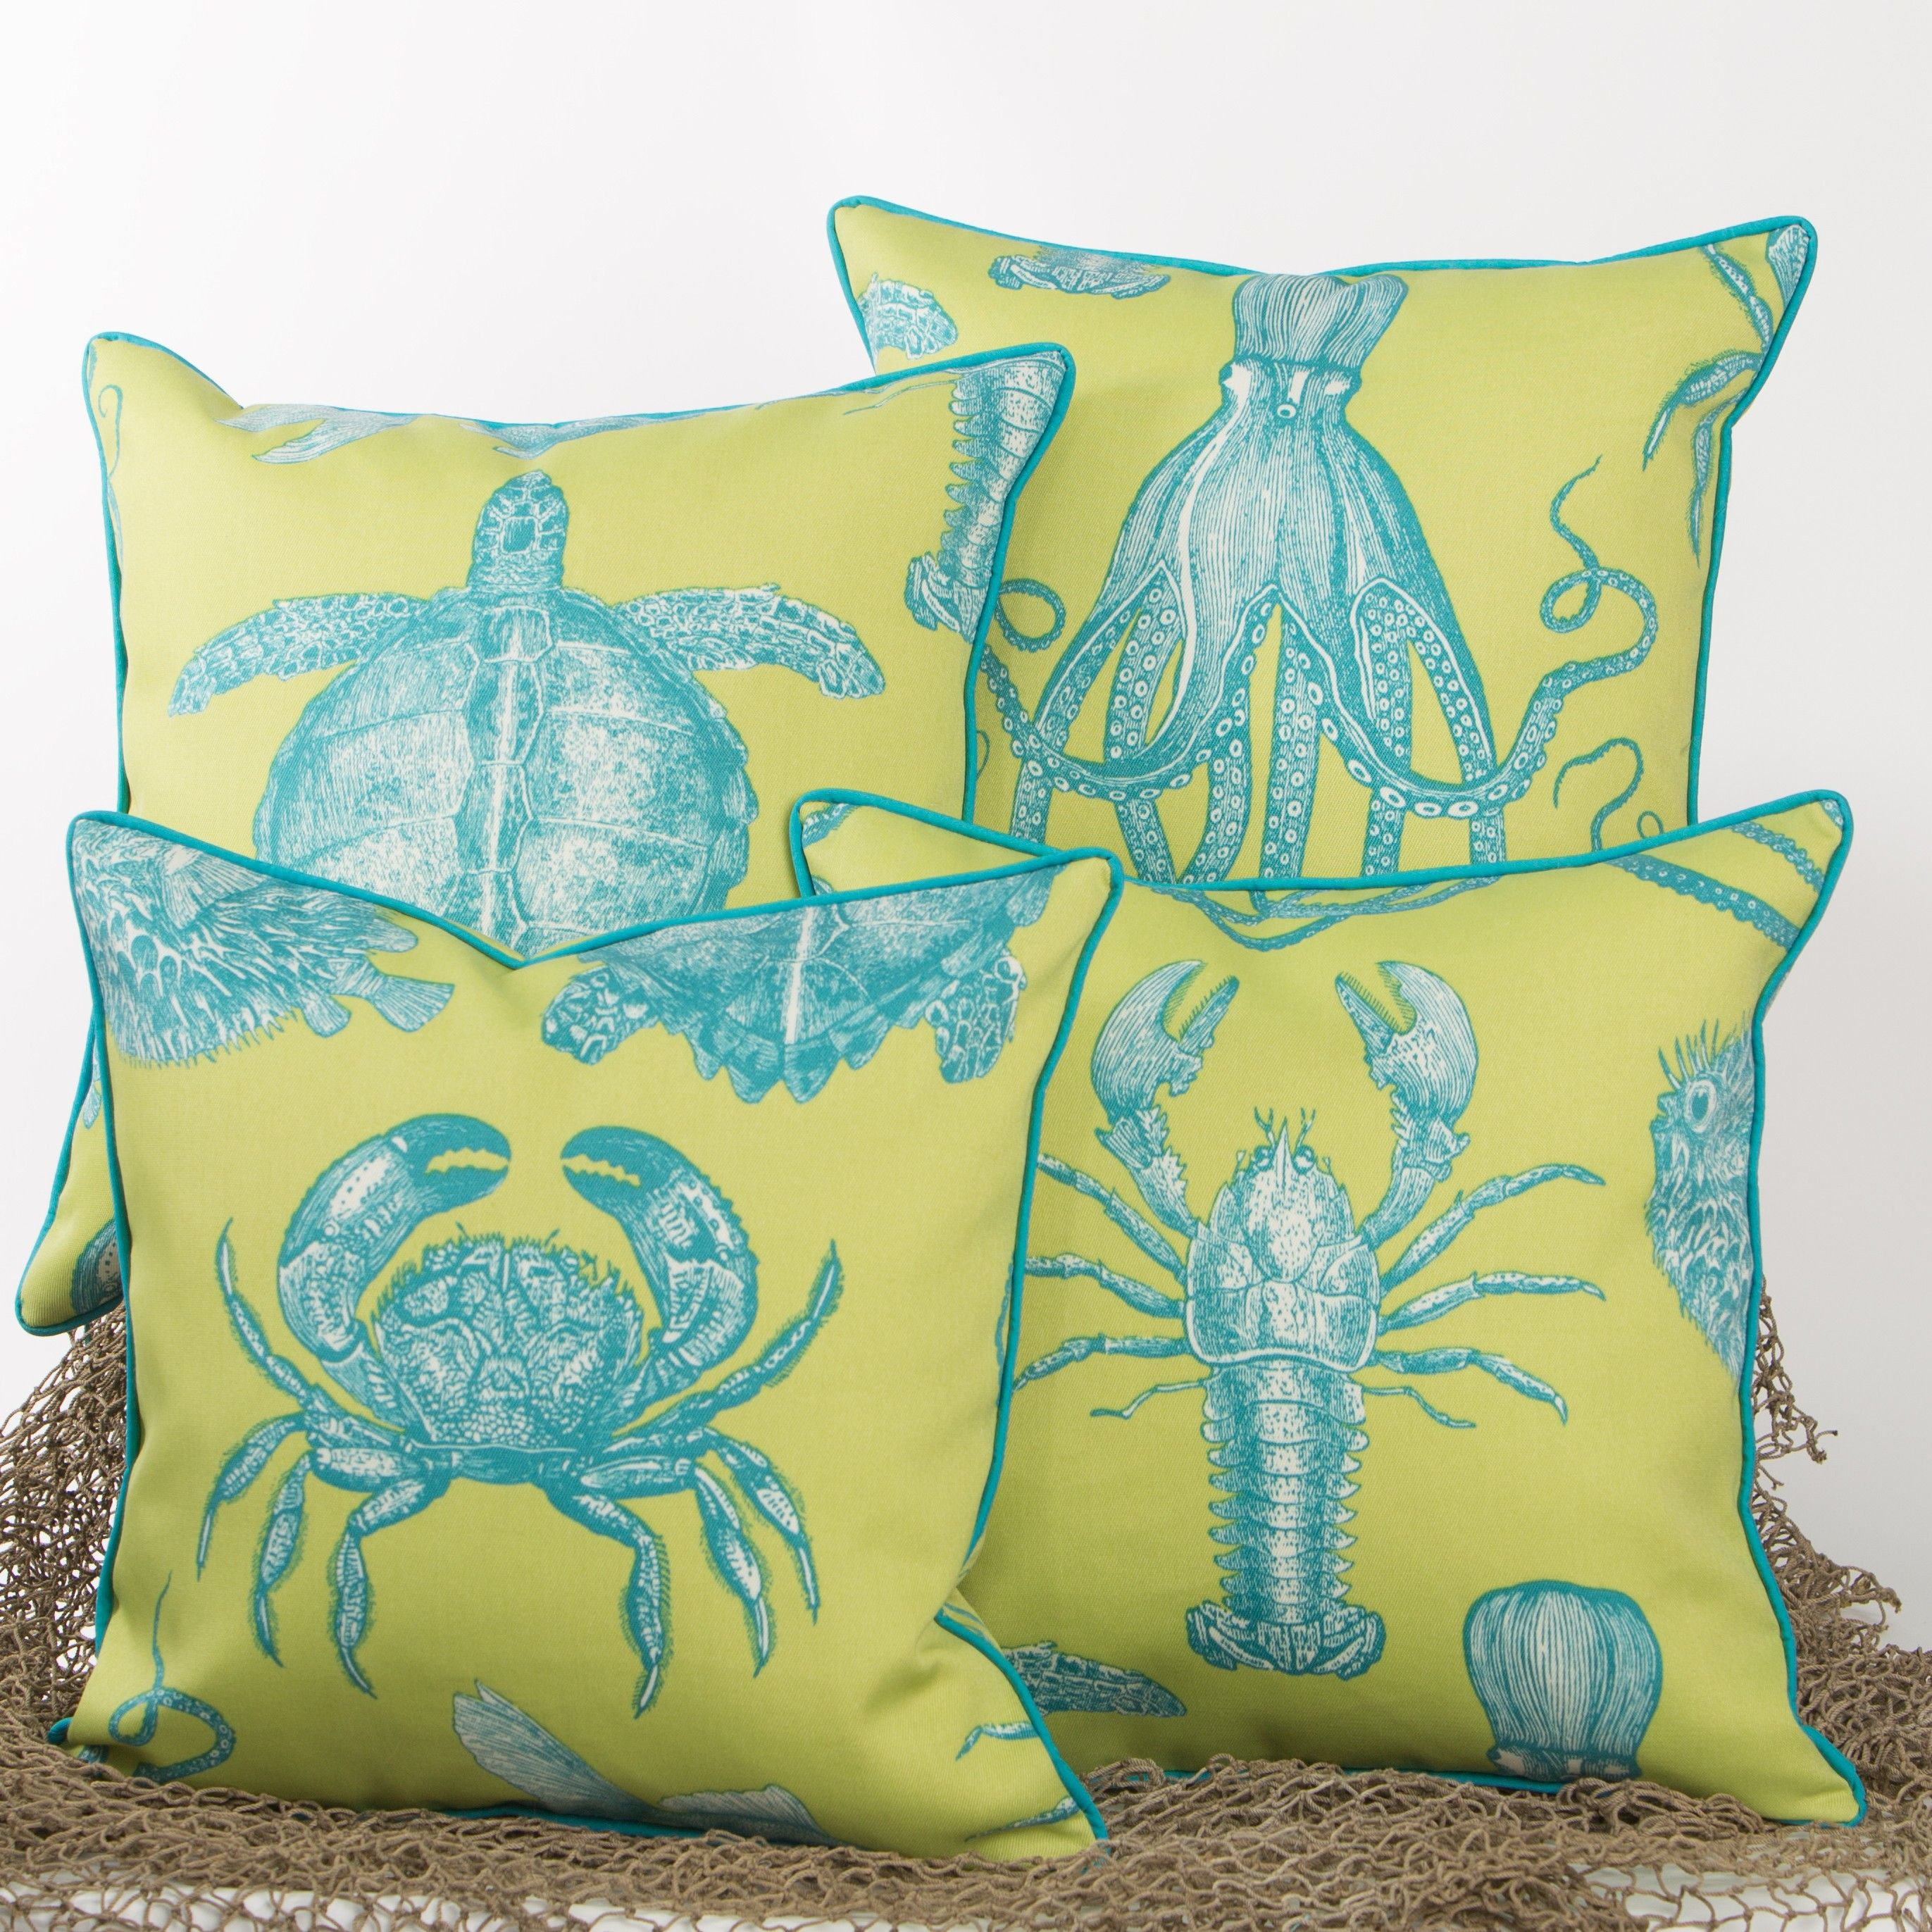 cover theme ideas to beach house pillows diy make pillow best design